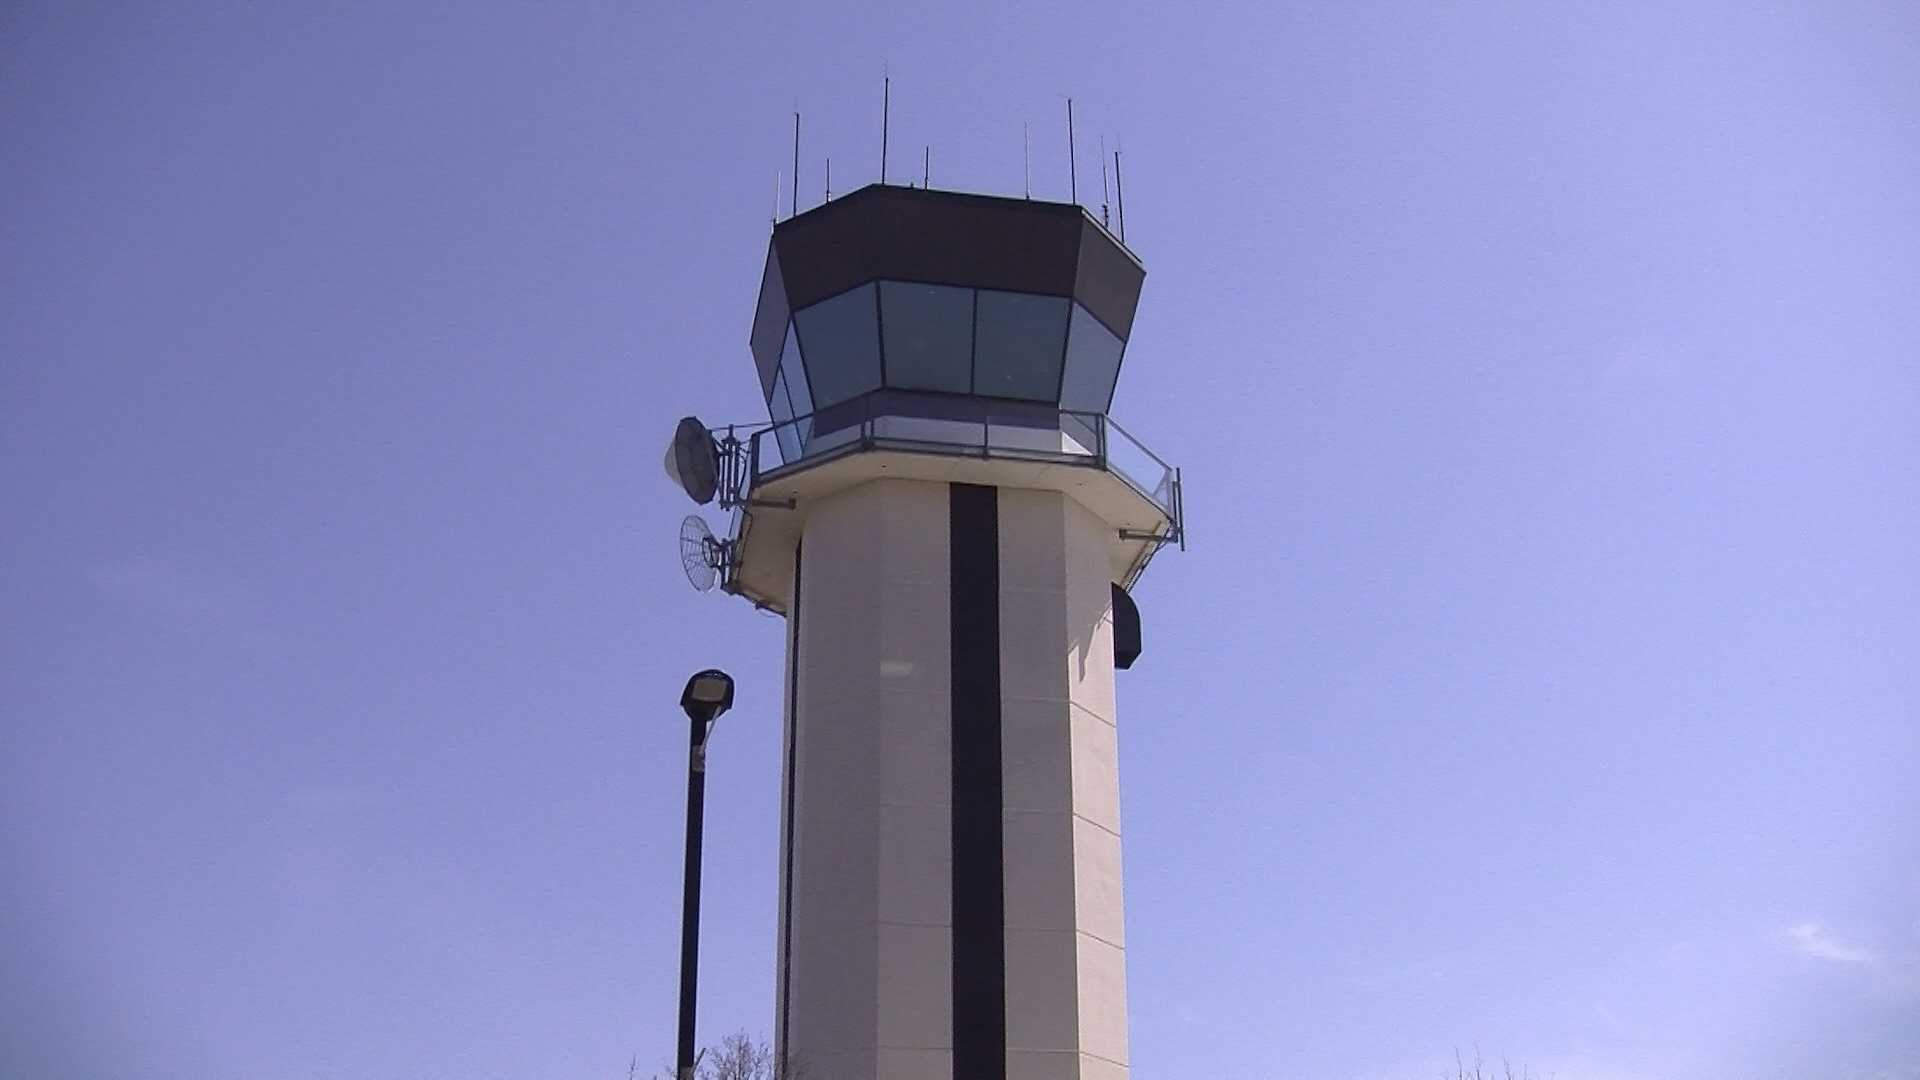 Furloughs likely to affect regional flights